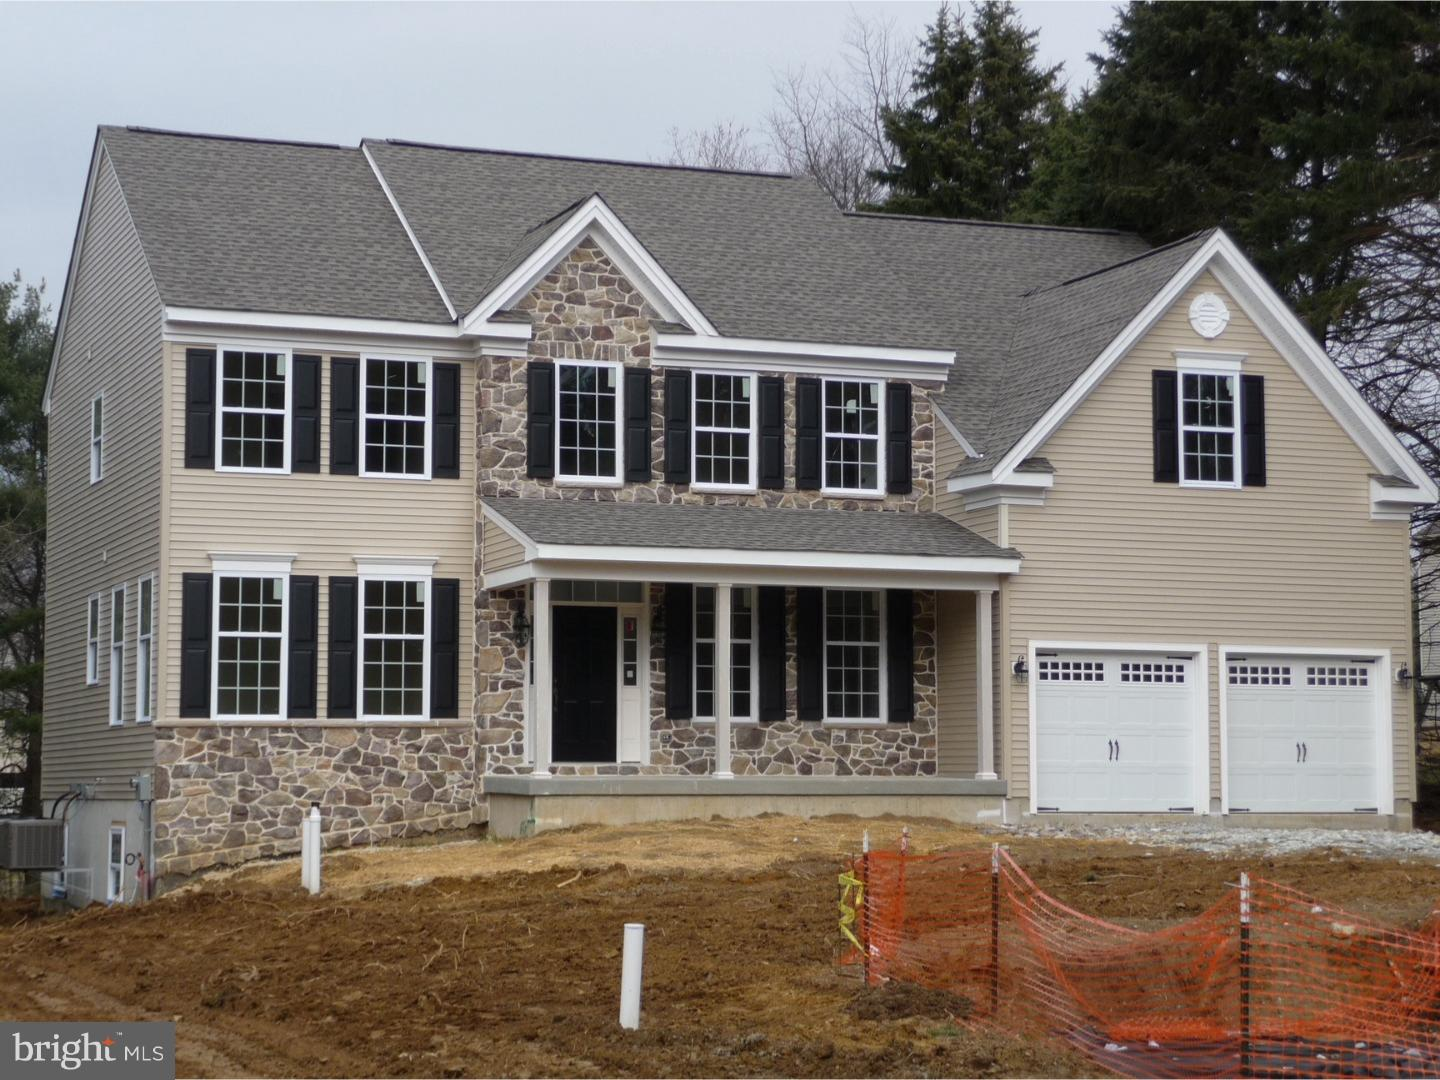 910 Greene Countrie Drive West Chester, PA 19380